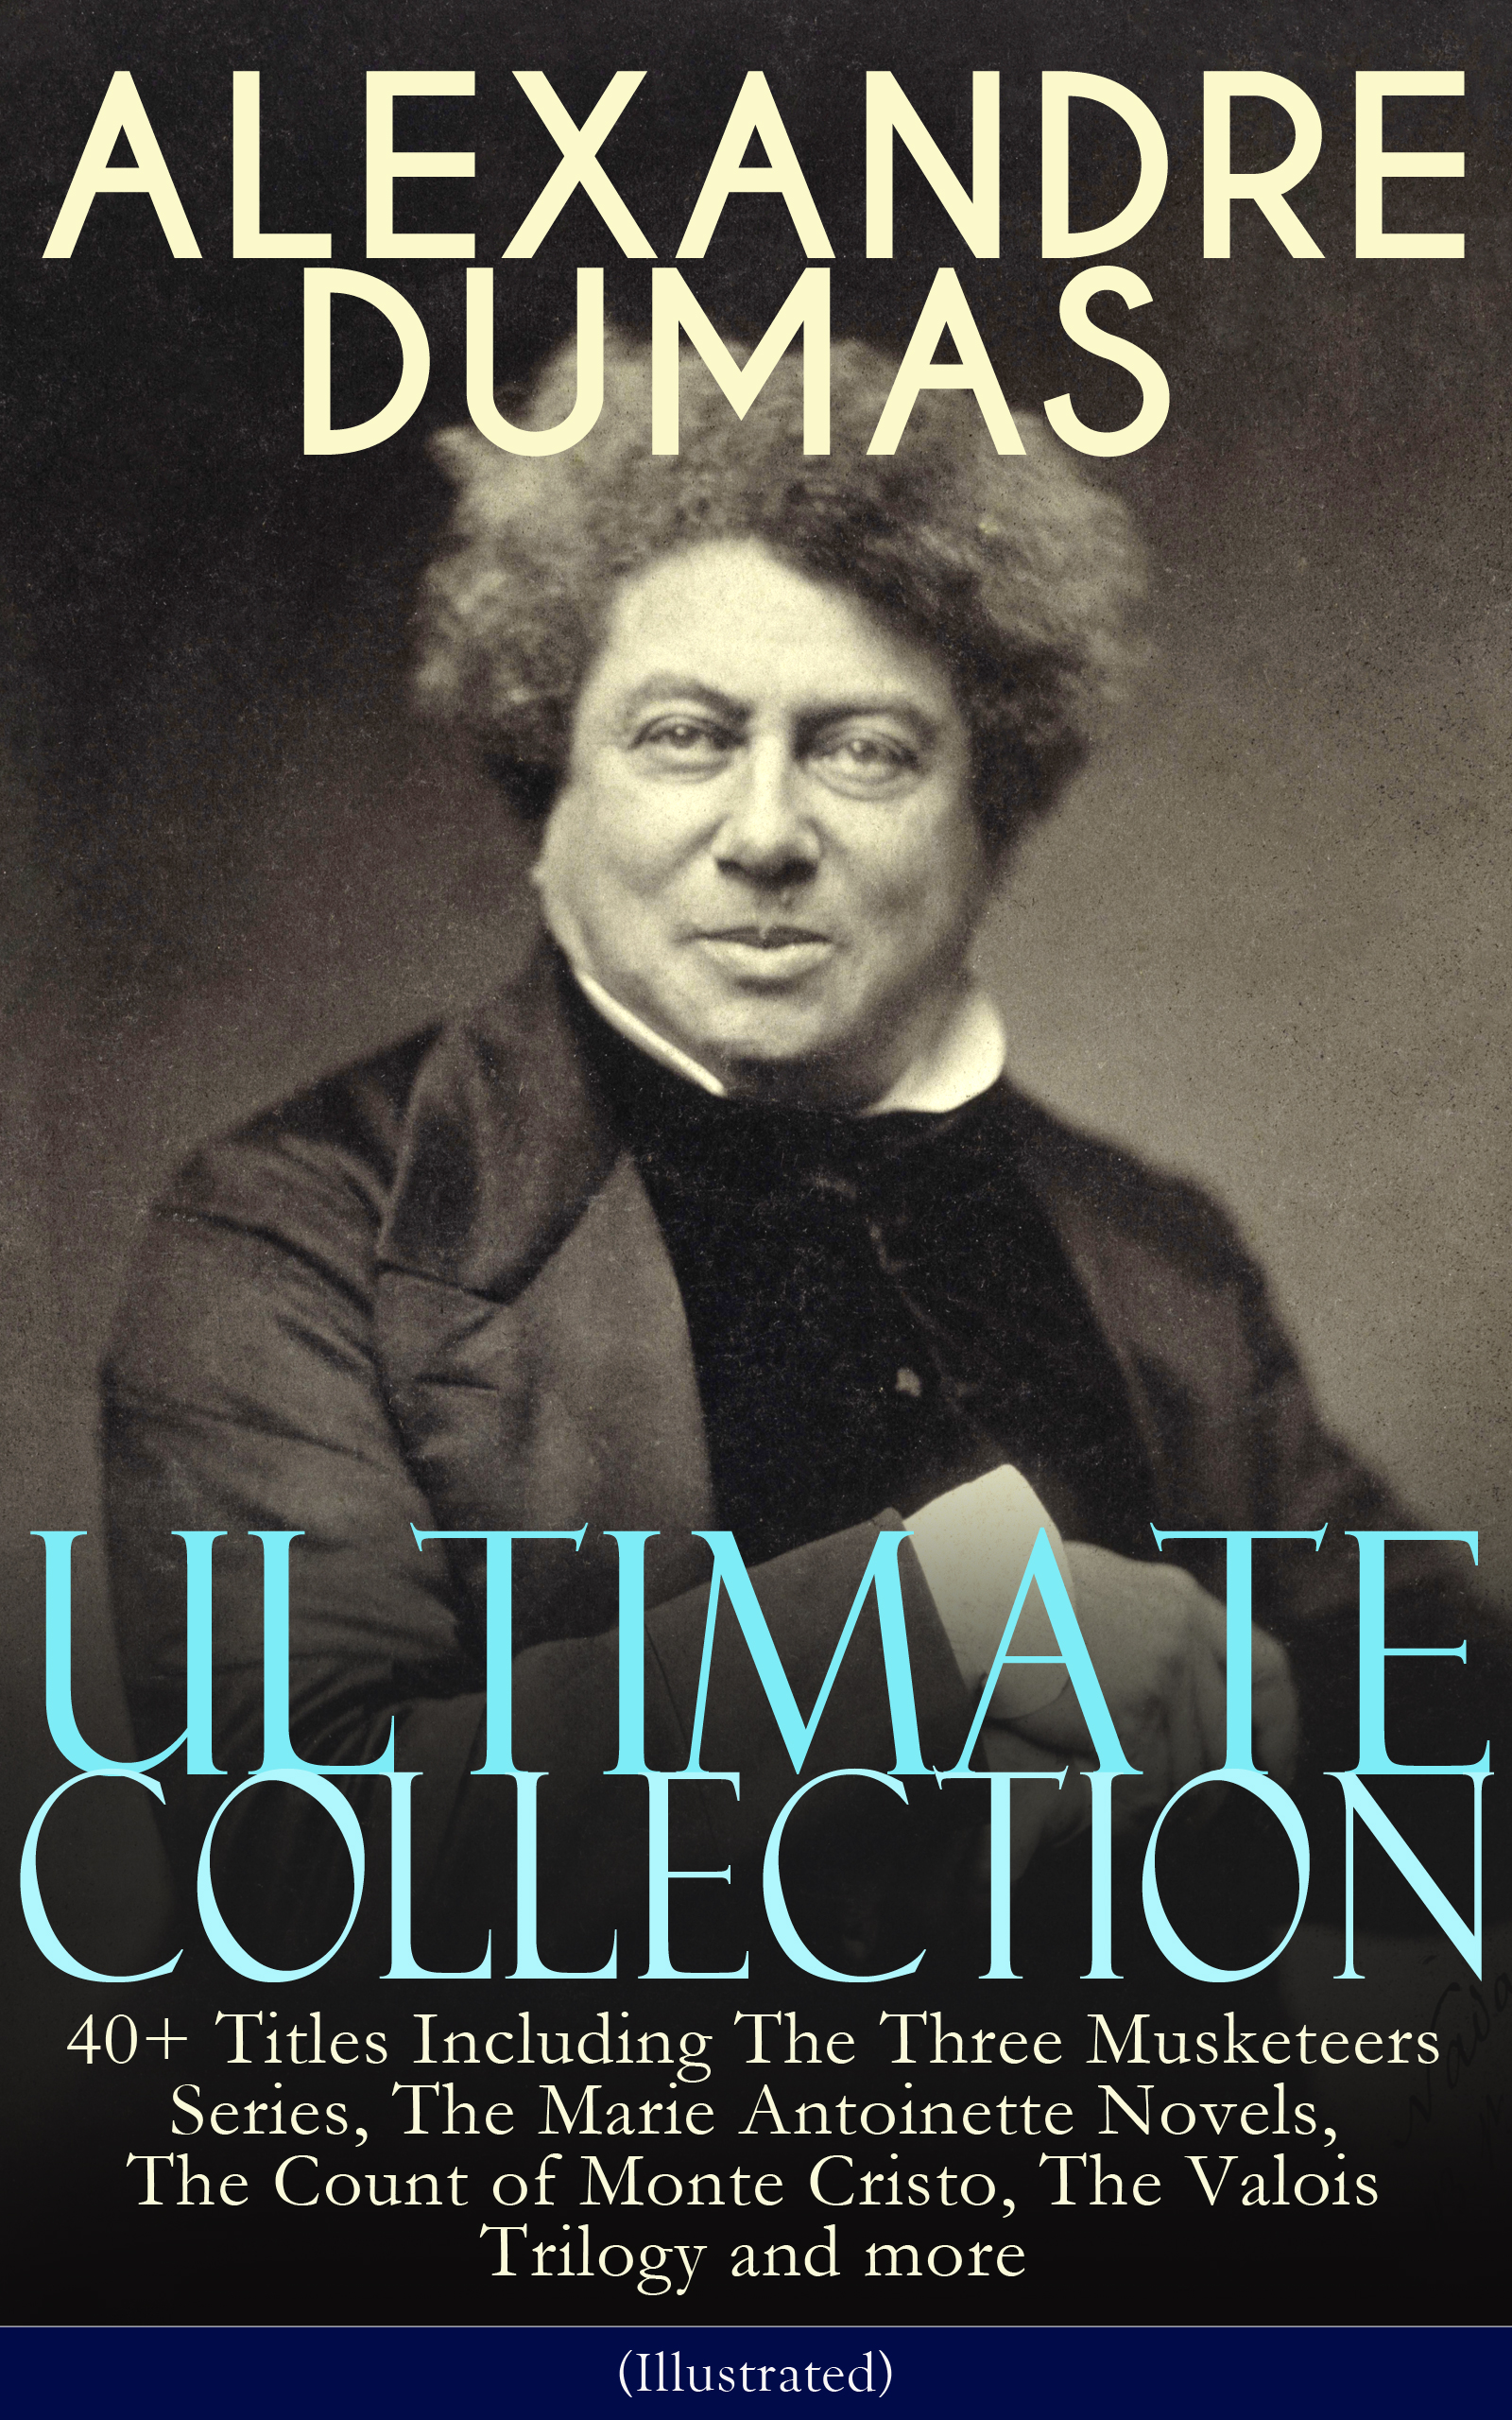 Alexandre Dumas ALEXANDRE DUMAS Ultimate Collection: 40+ Titles Including The Three Musketeers Series, The Marie Antoinette Novels, The Count of Monte Cristo, The Valois Trilogy and more (Illustrated) melanie clegg marie antoinette an intimate history